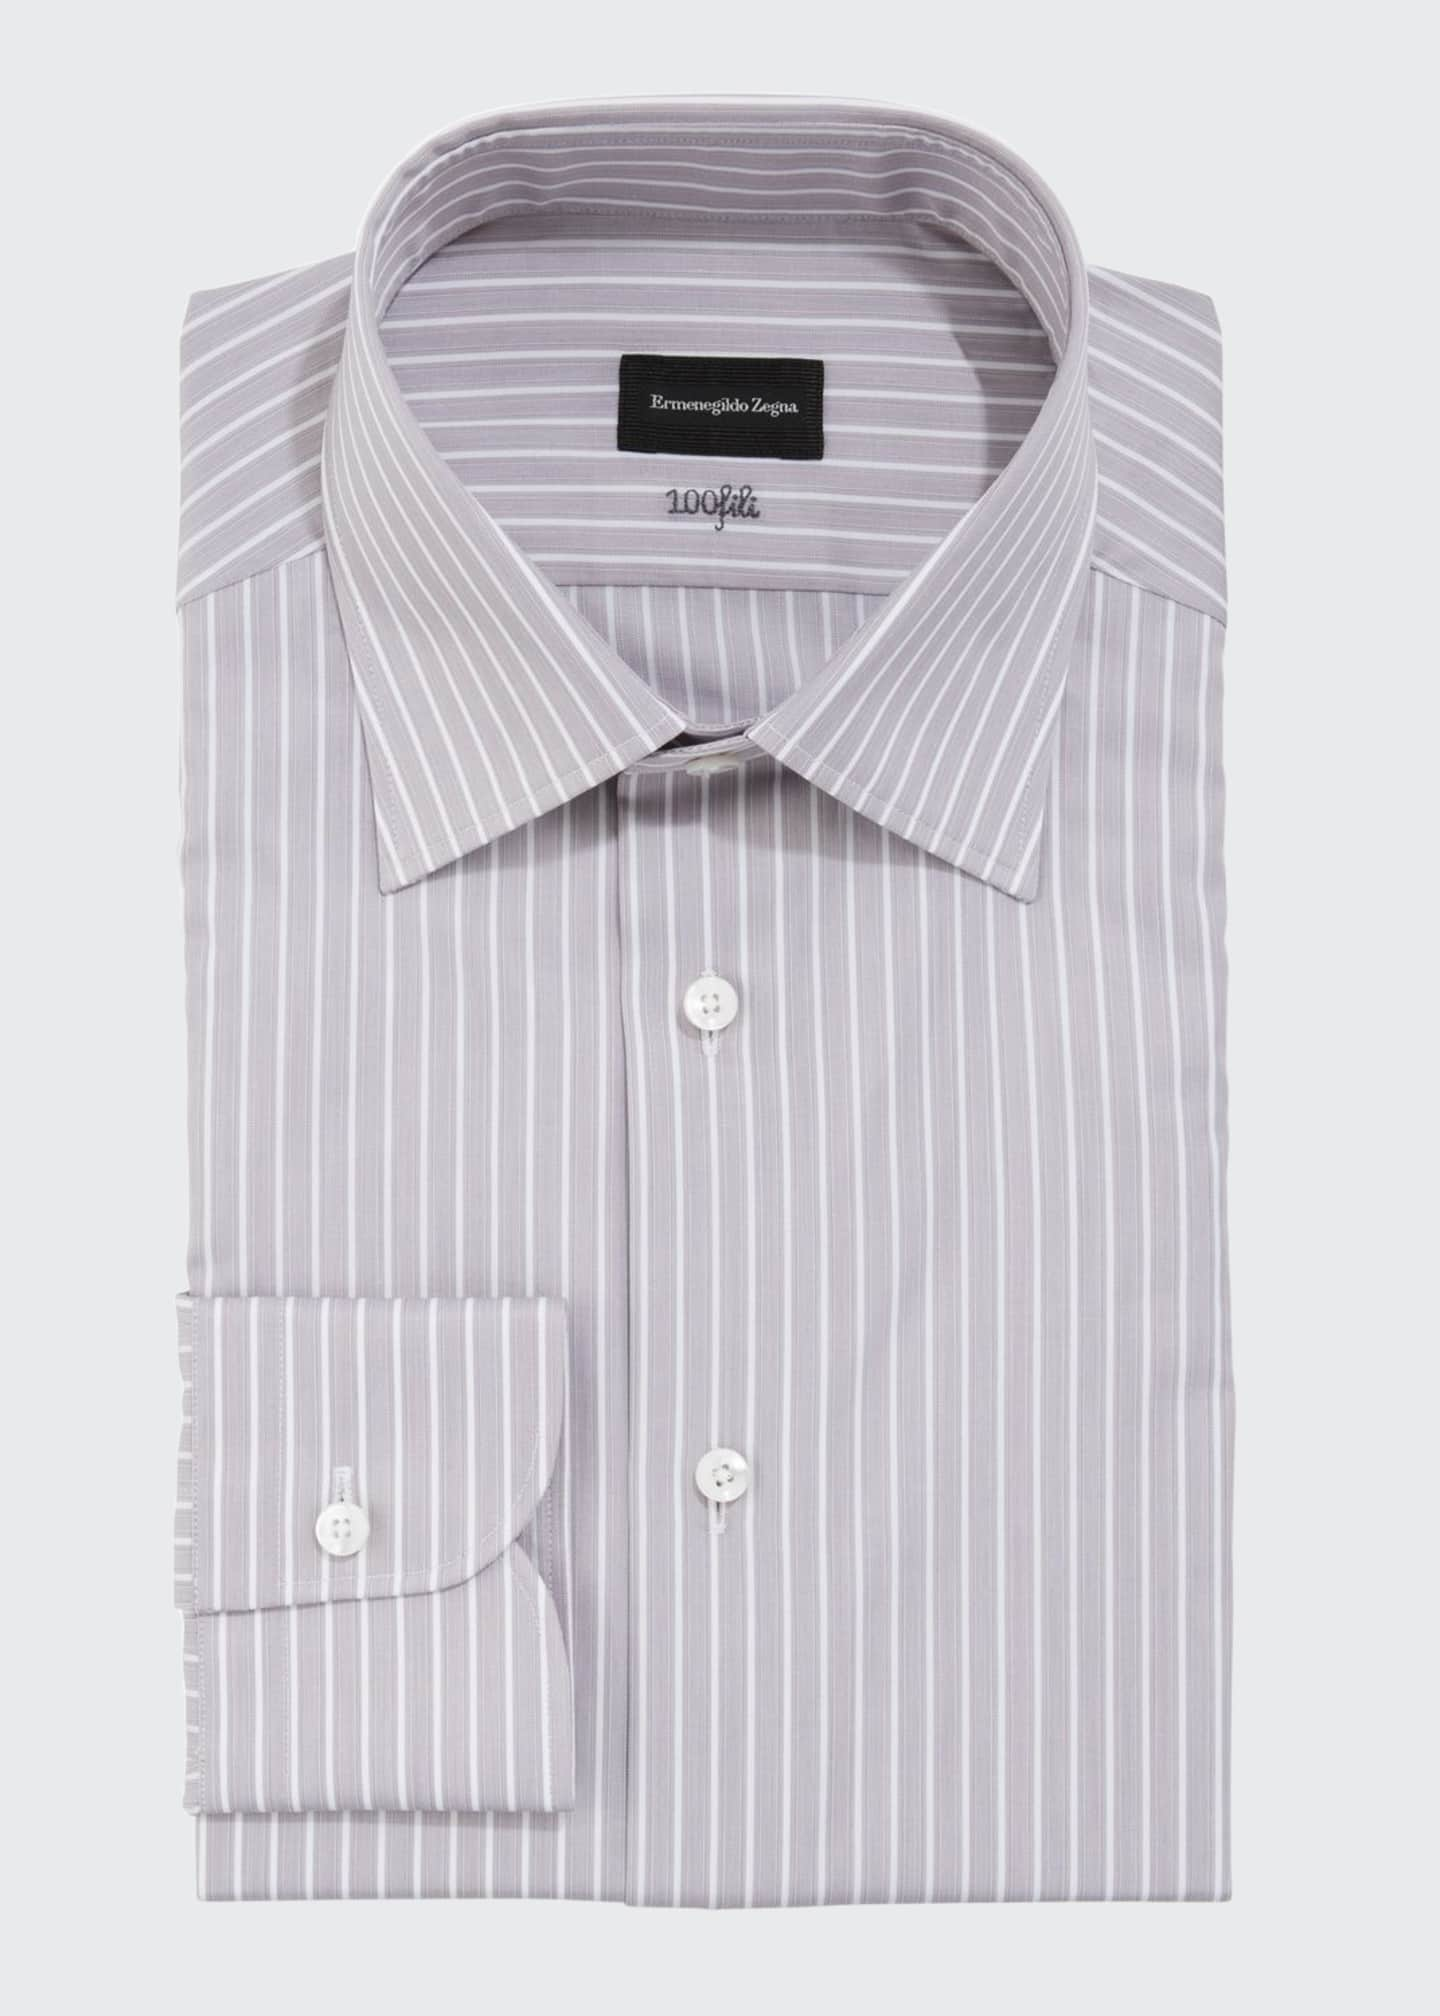 Ermenegildo Zegna Men's 100fili Striped Cotton Dress Shirt